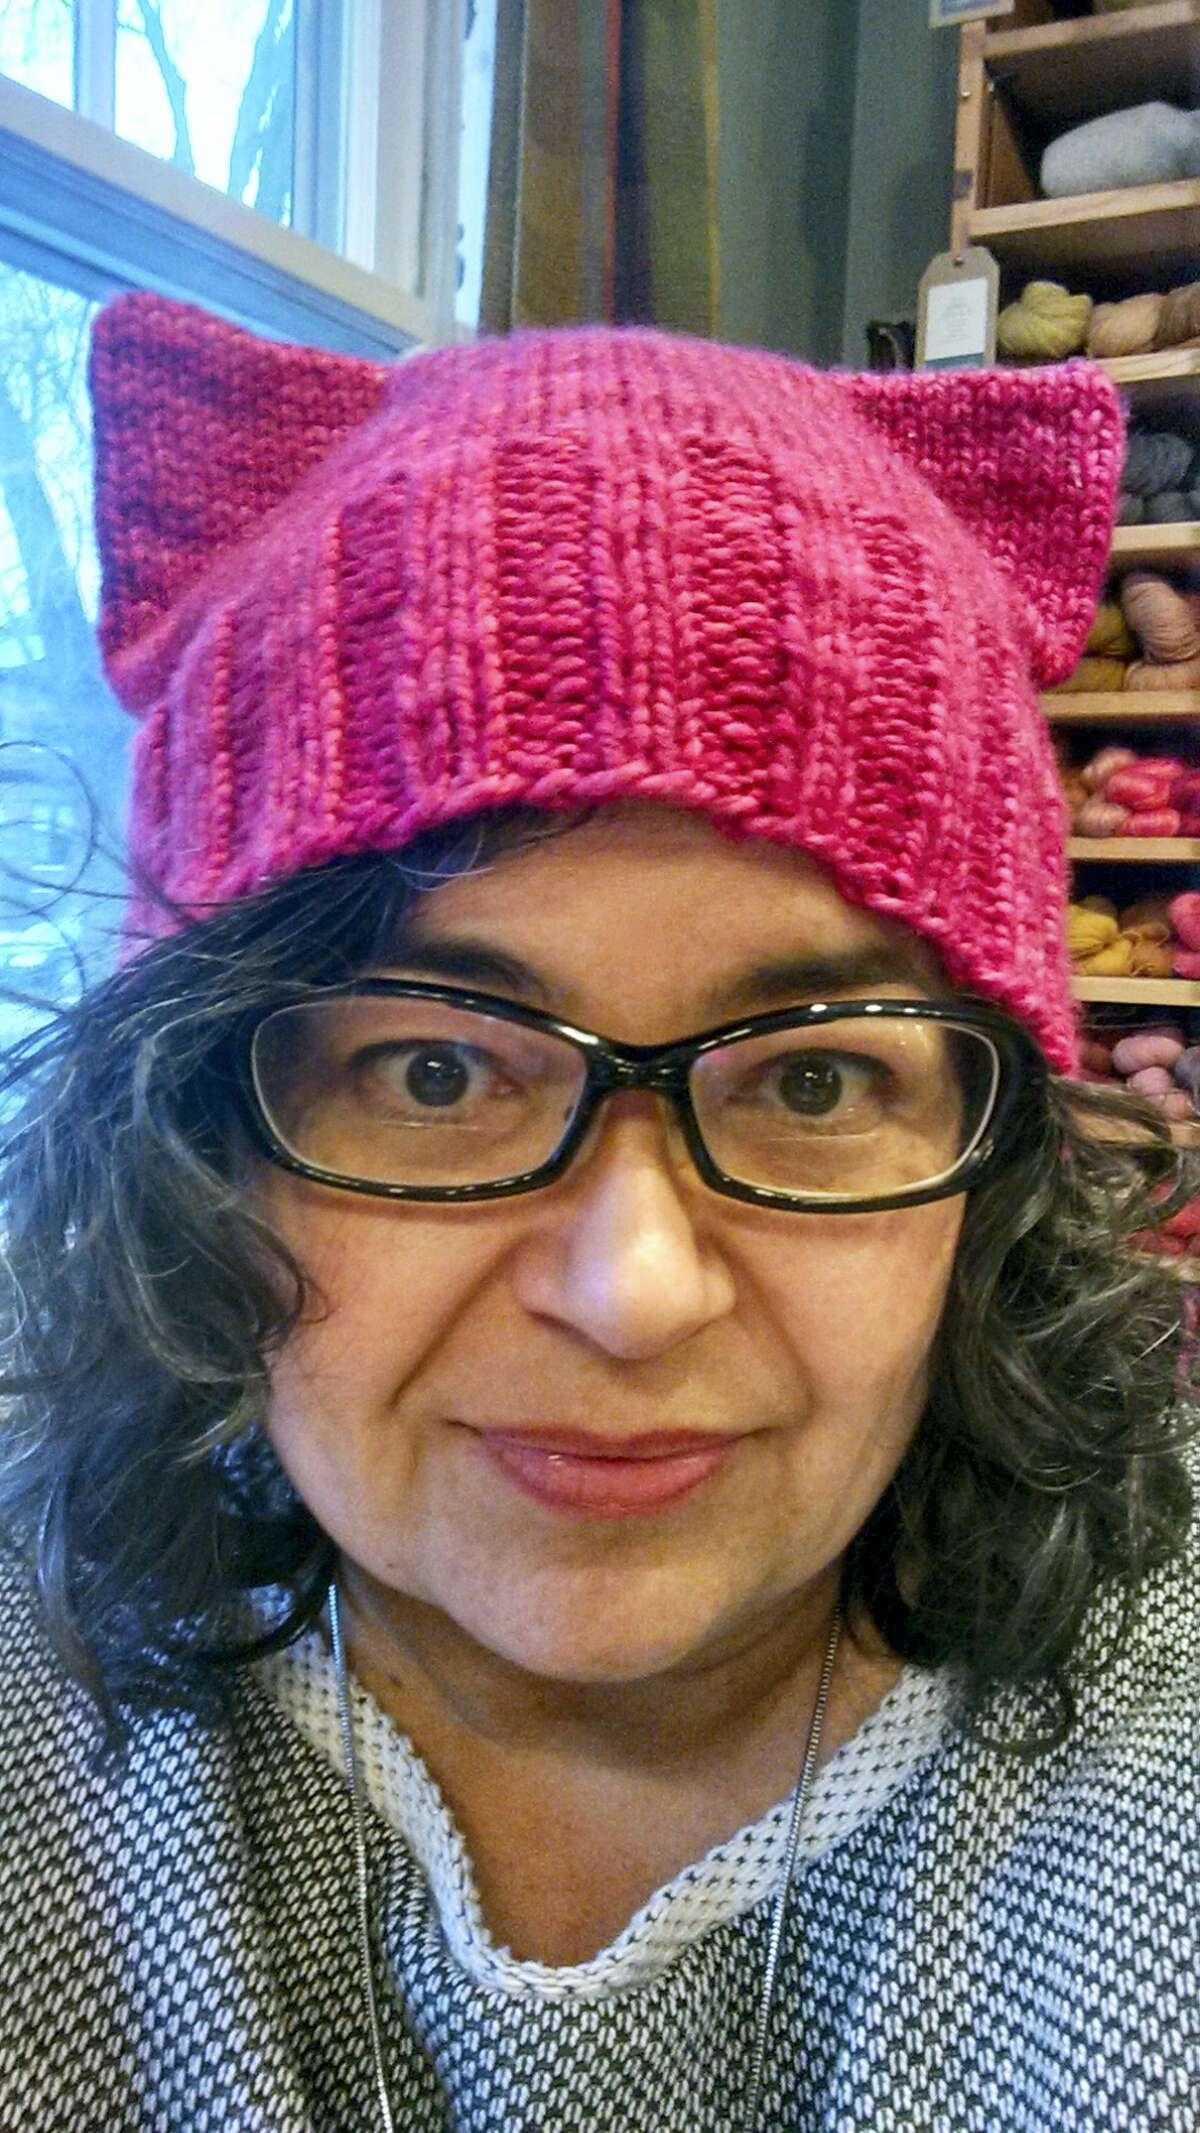 """This January 2017 photo provided by Angie Paulson, shows Paulson, a knitter who works at The Yarnery shop in Saint Paul, Minn., as she displays one of the """"pussy"""" hats she made as part of a call to action answered by thousands of knitters to supply marchers at the Women's March in Washington, D.C., on Jan. 21 with warm head gear and a way to show their solidarity for women's rights."""